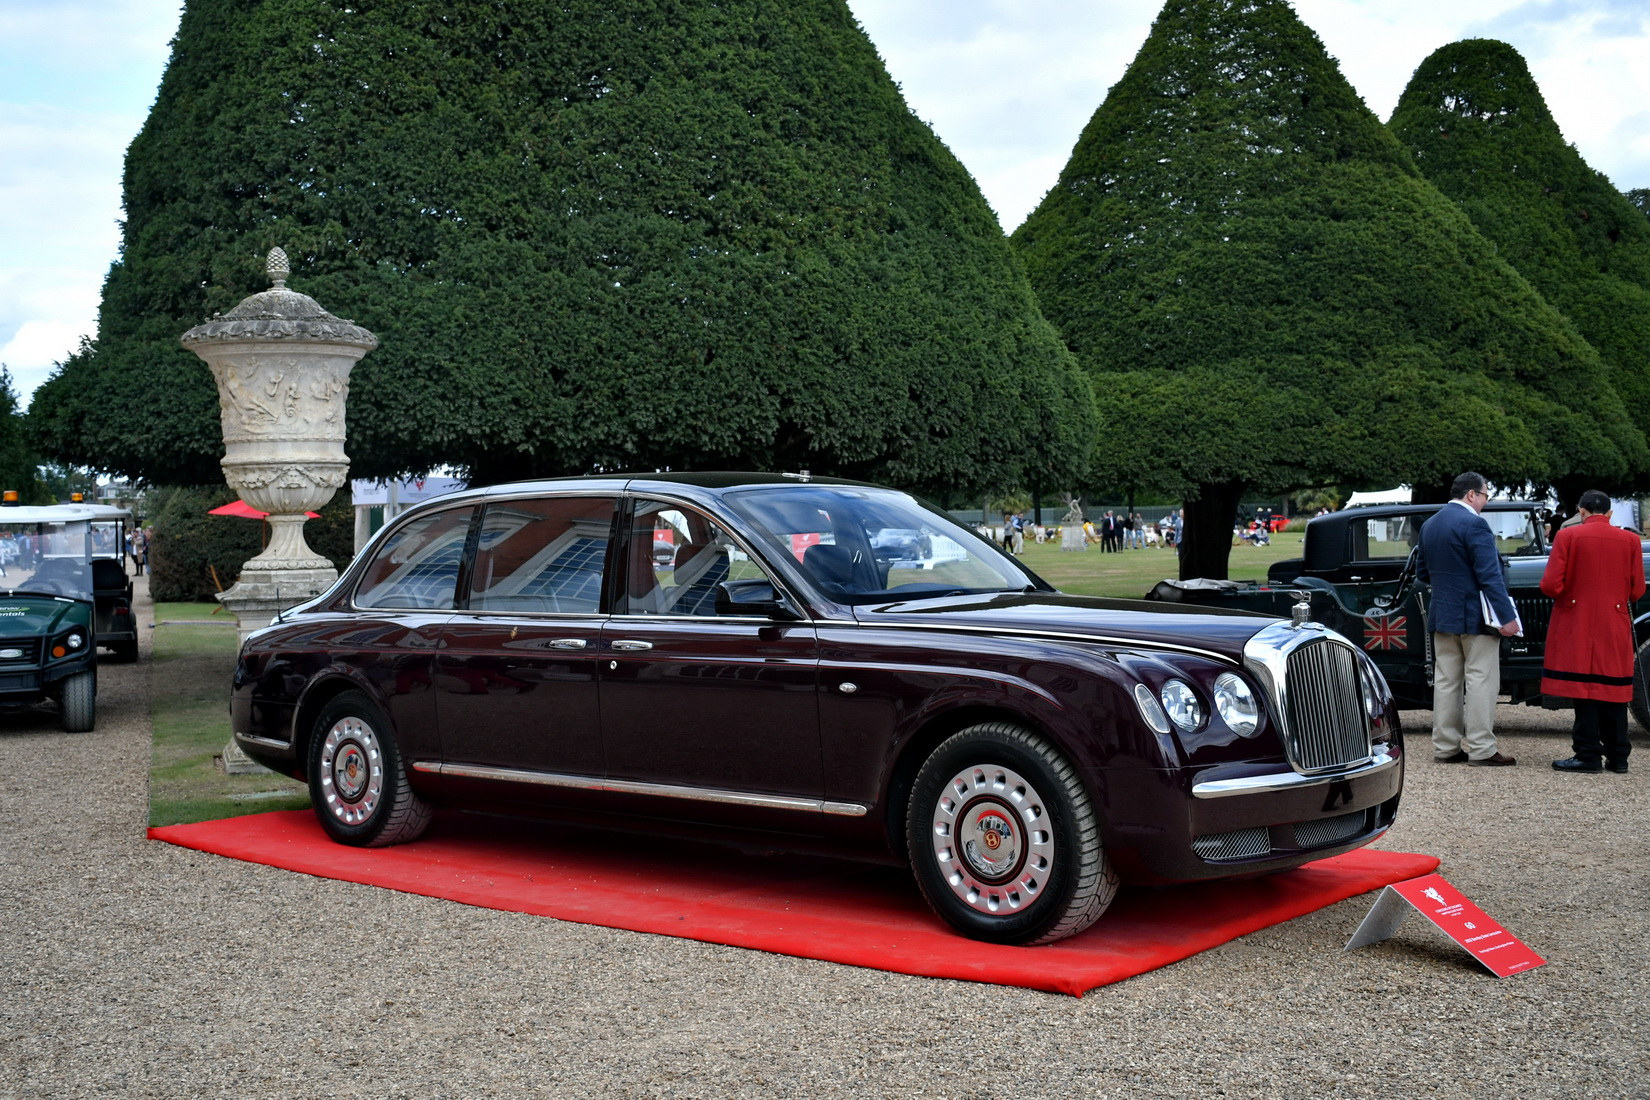 Bentley State Limousine the Queen's Official Car